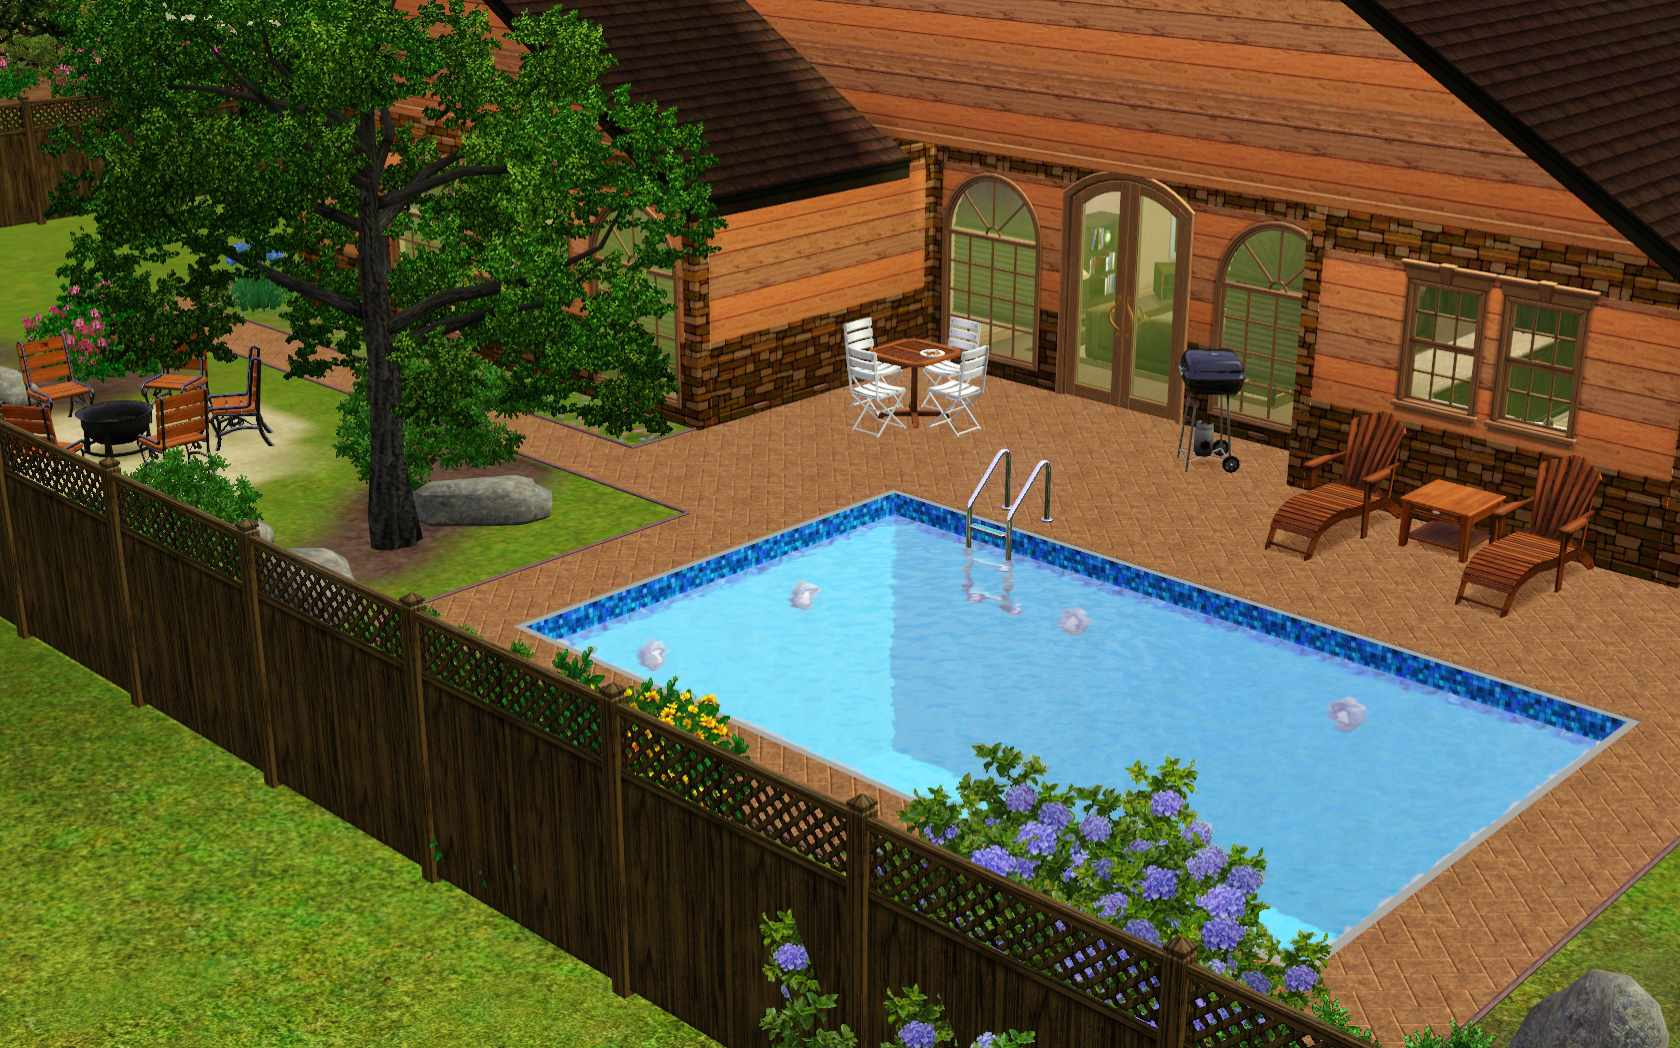 The Sims 3 Room Build Ideas And Examples. Sims 3 Pets House Ideas